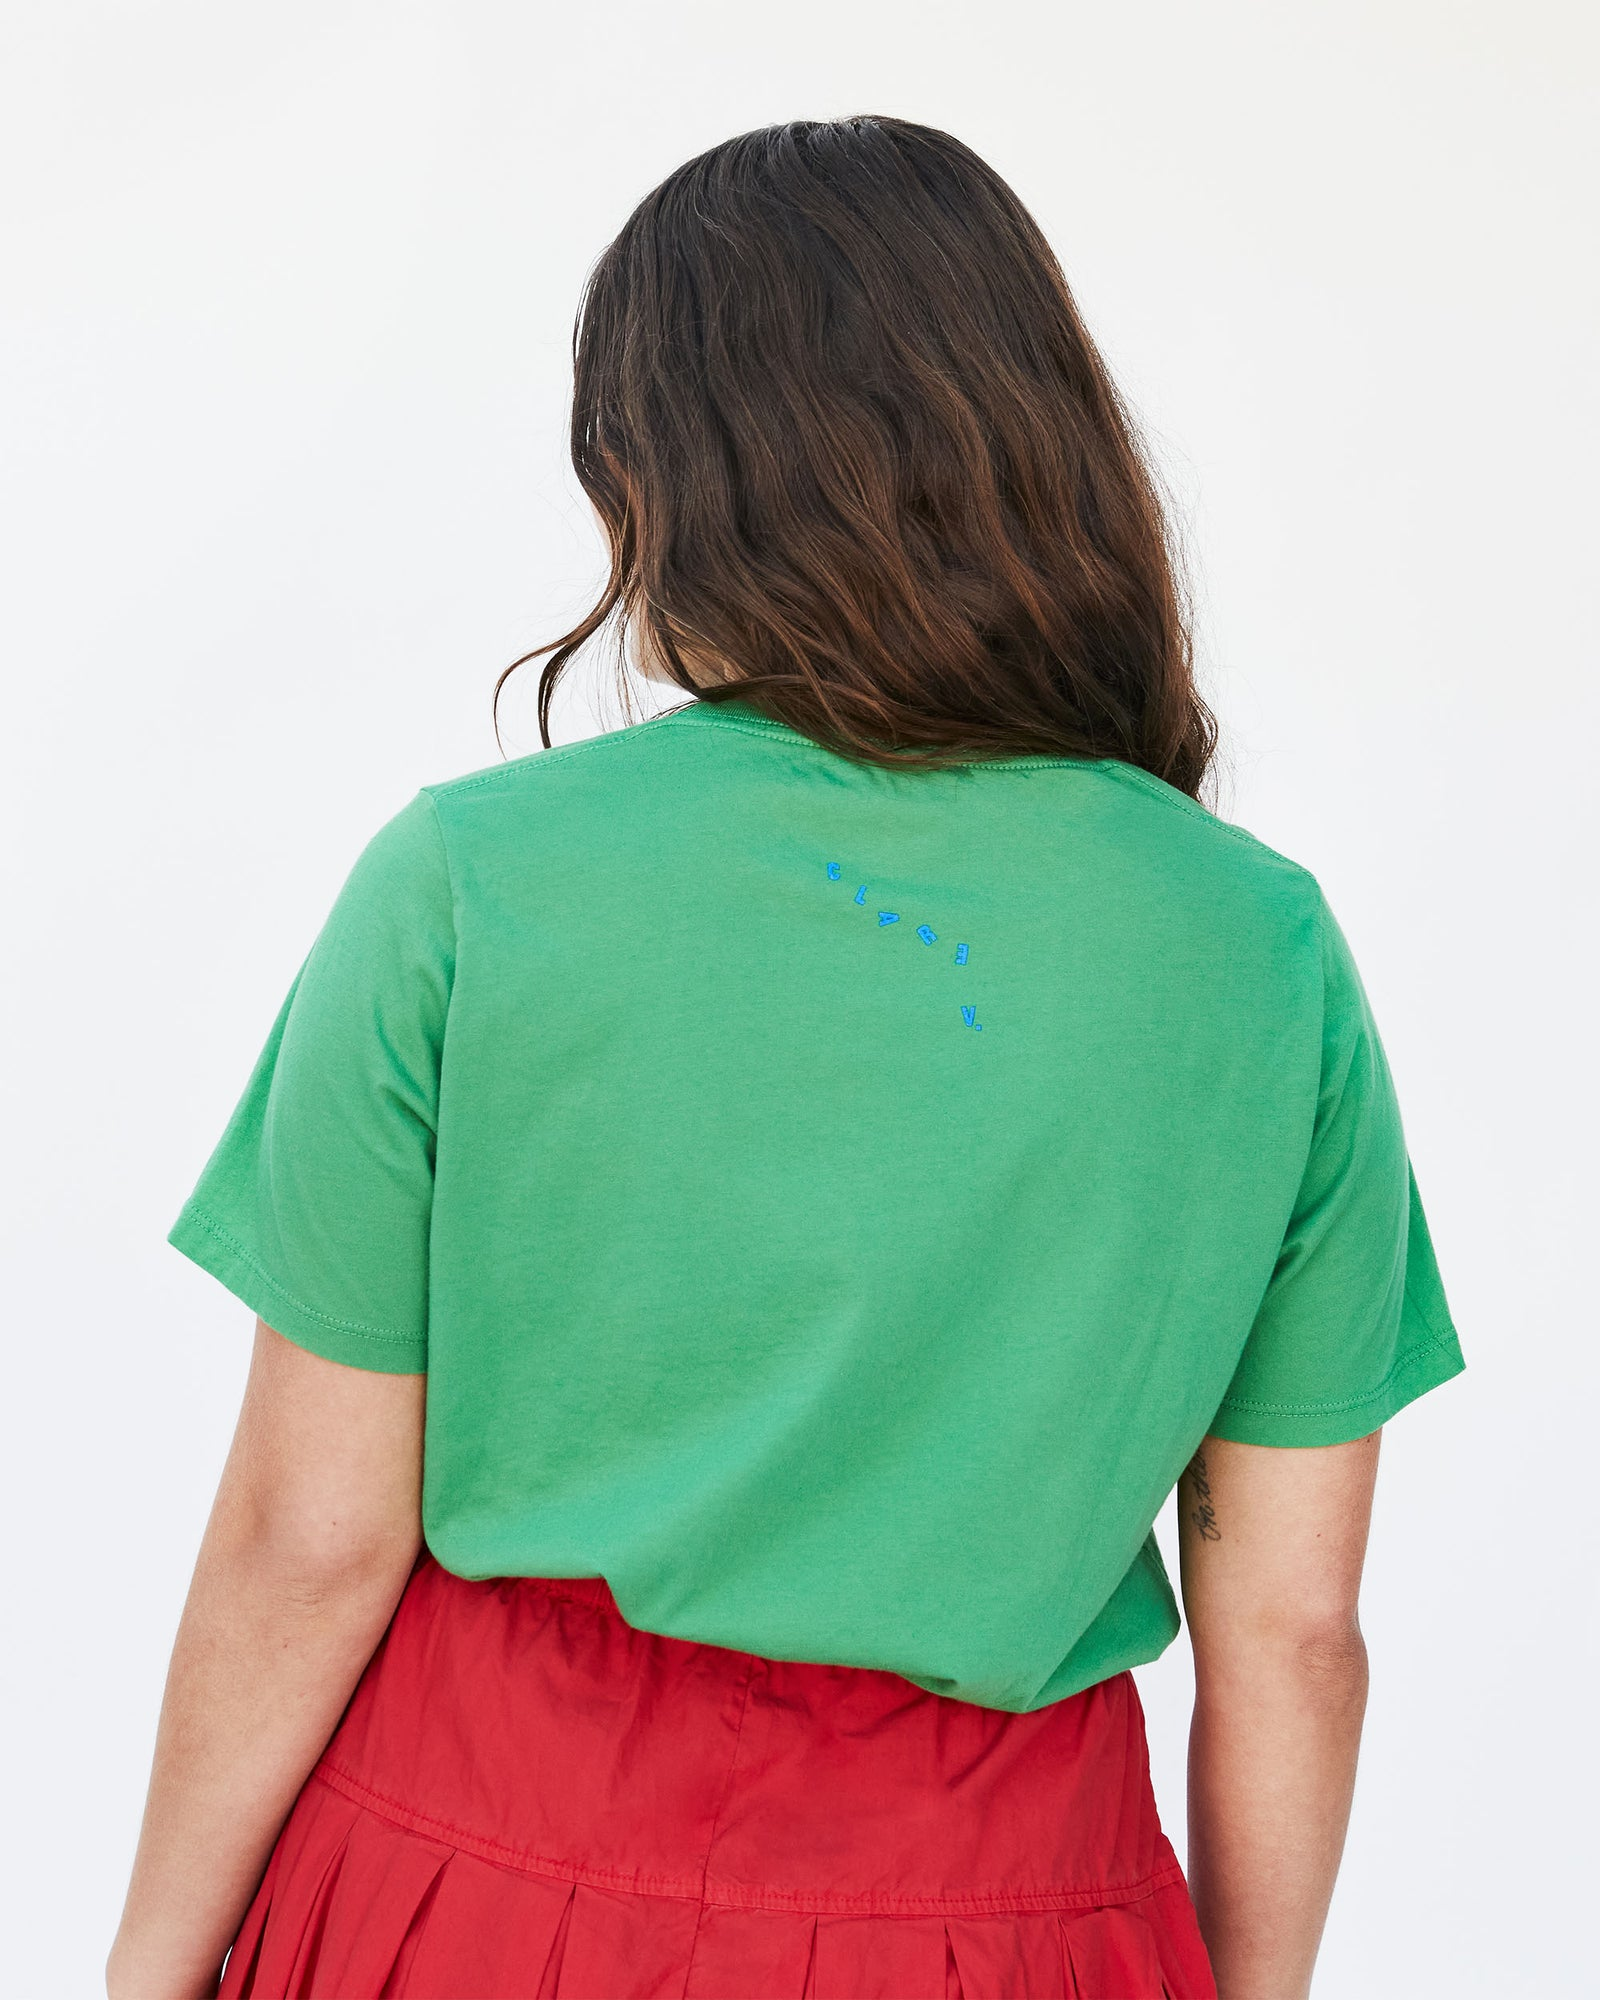 Abbi wearing our Green with Blue Oui Original Fit Tee - Back